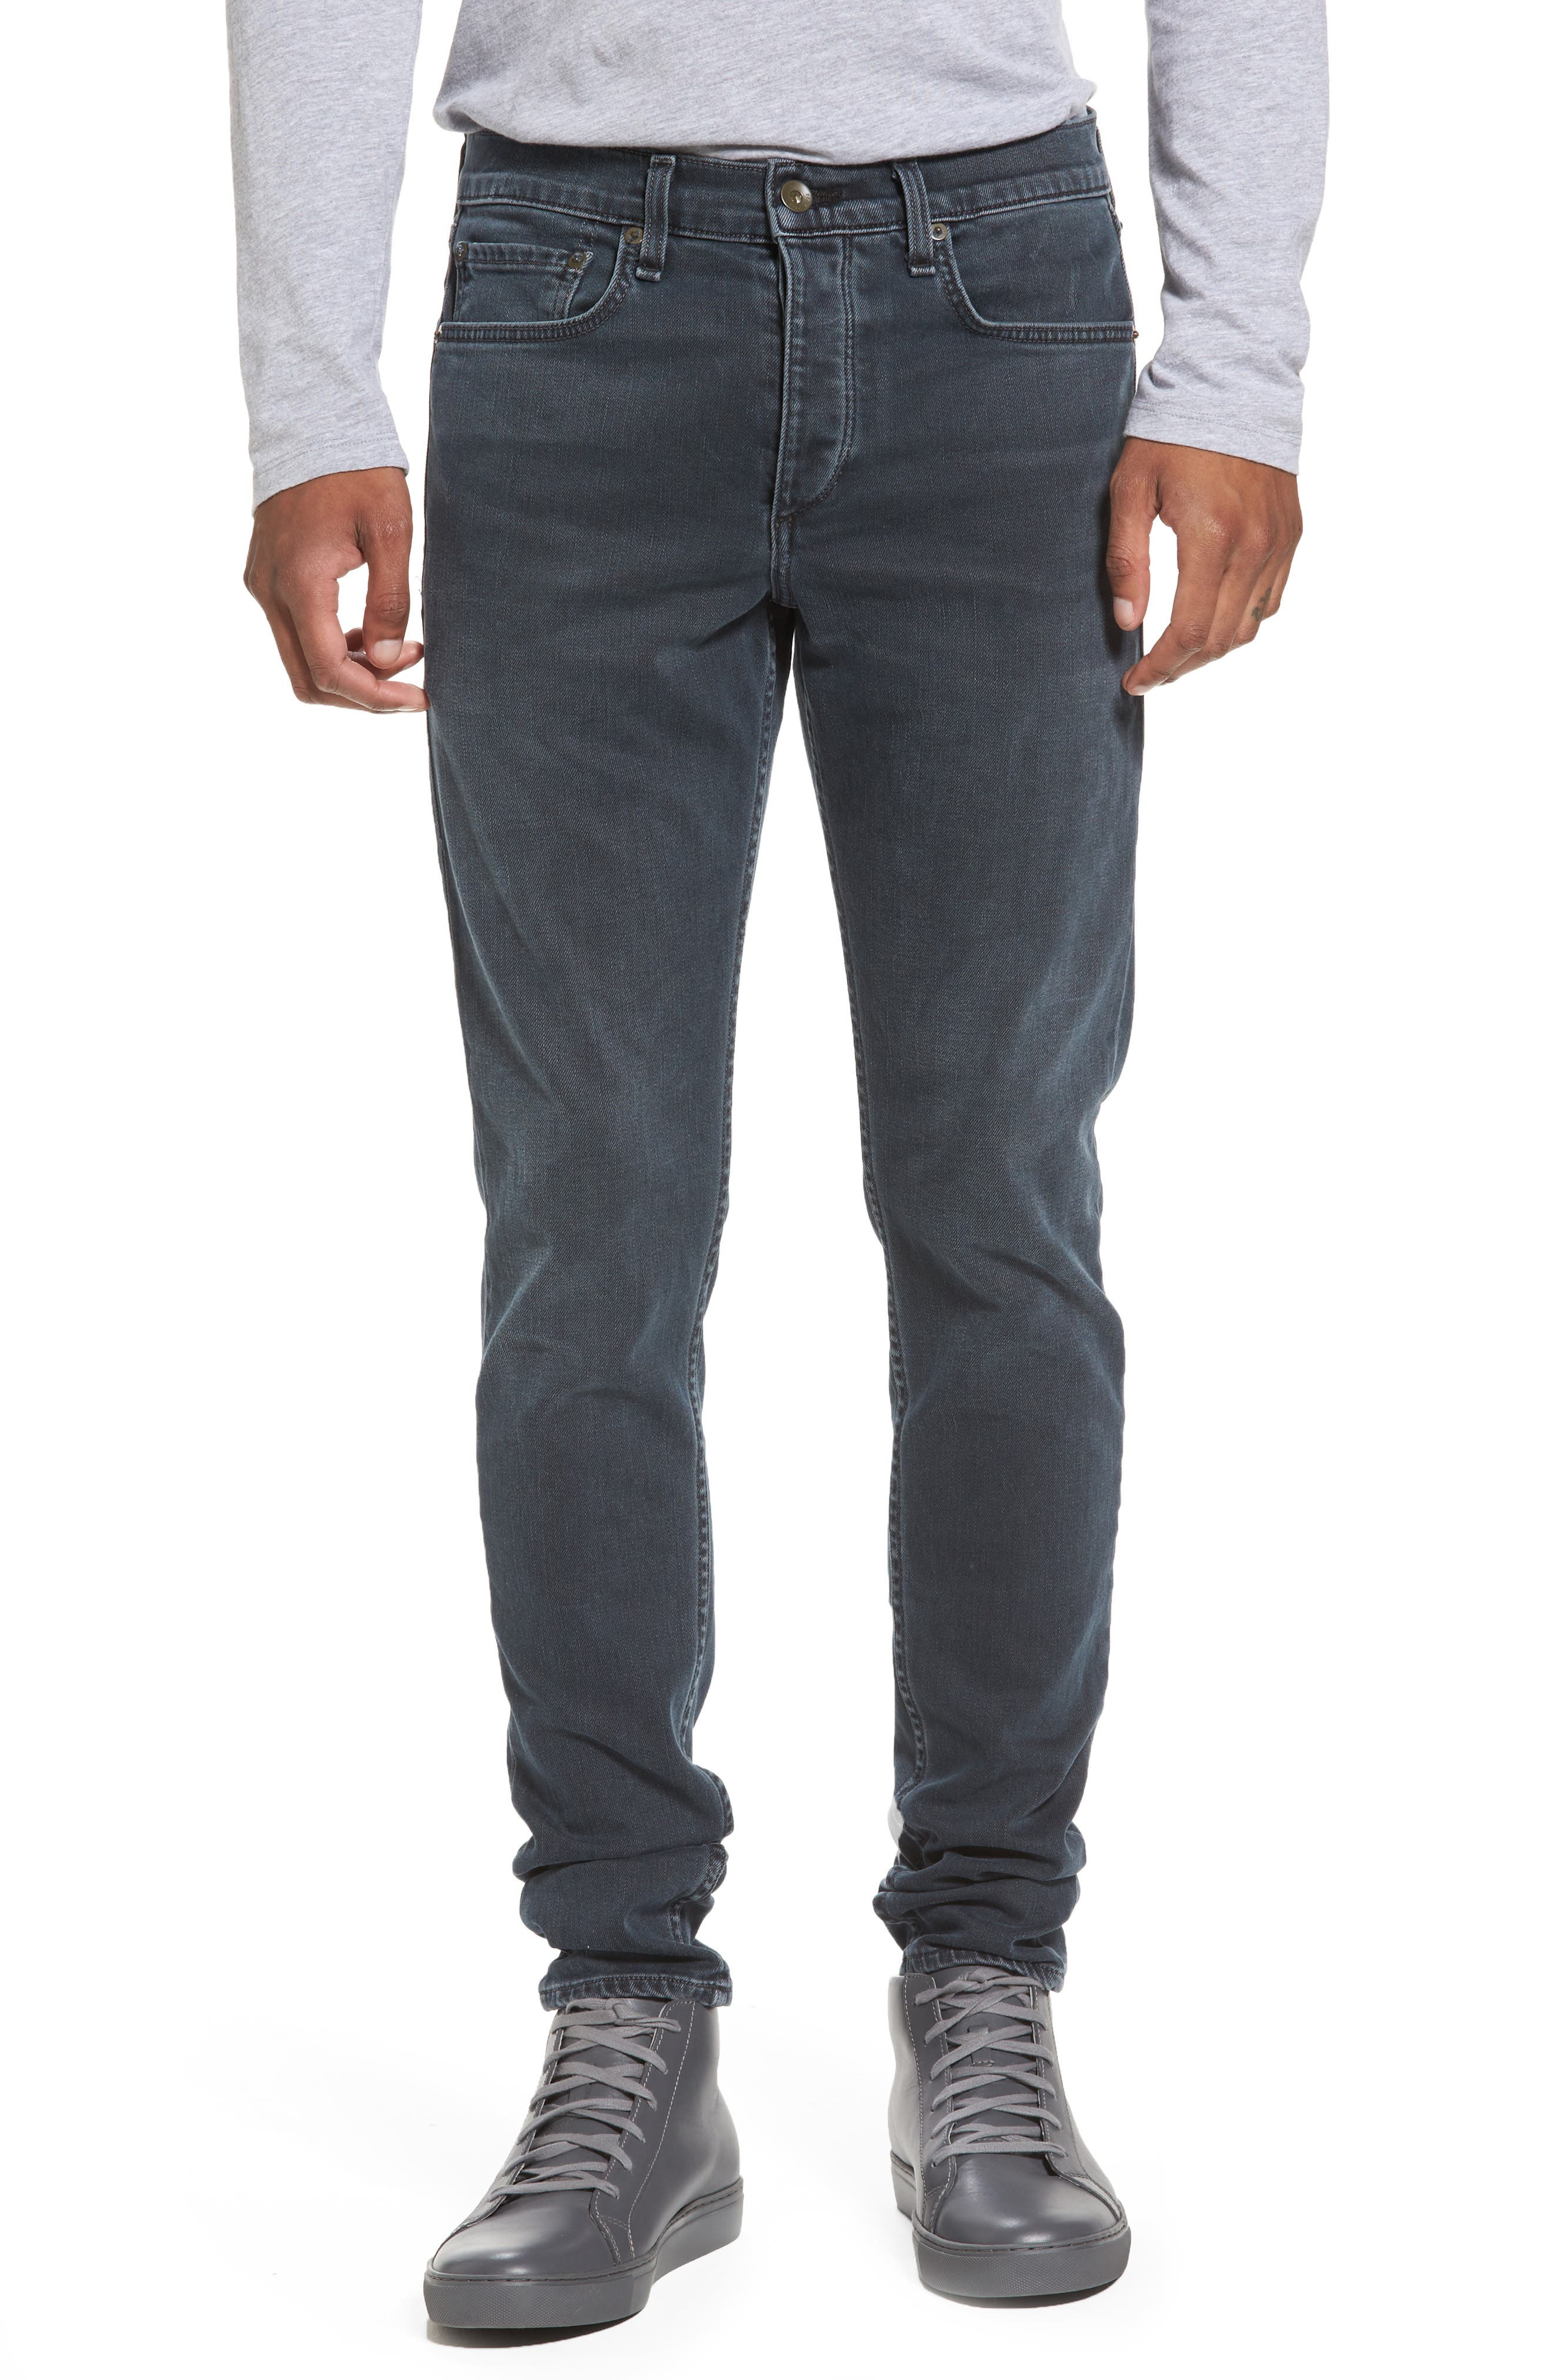 Fit 1 Skinny Fit Jeans,                         Main,                         color, Minna